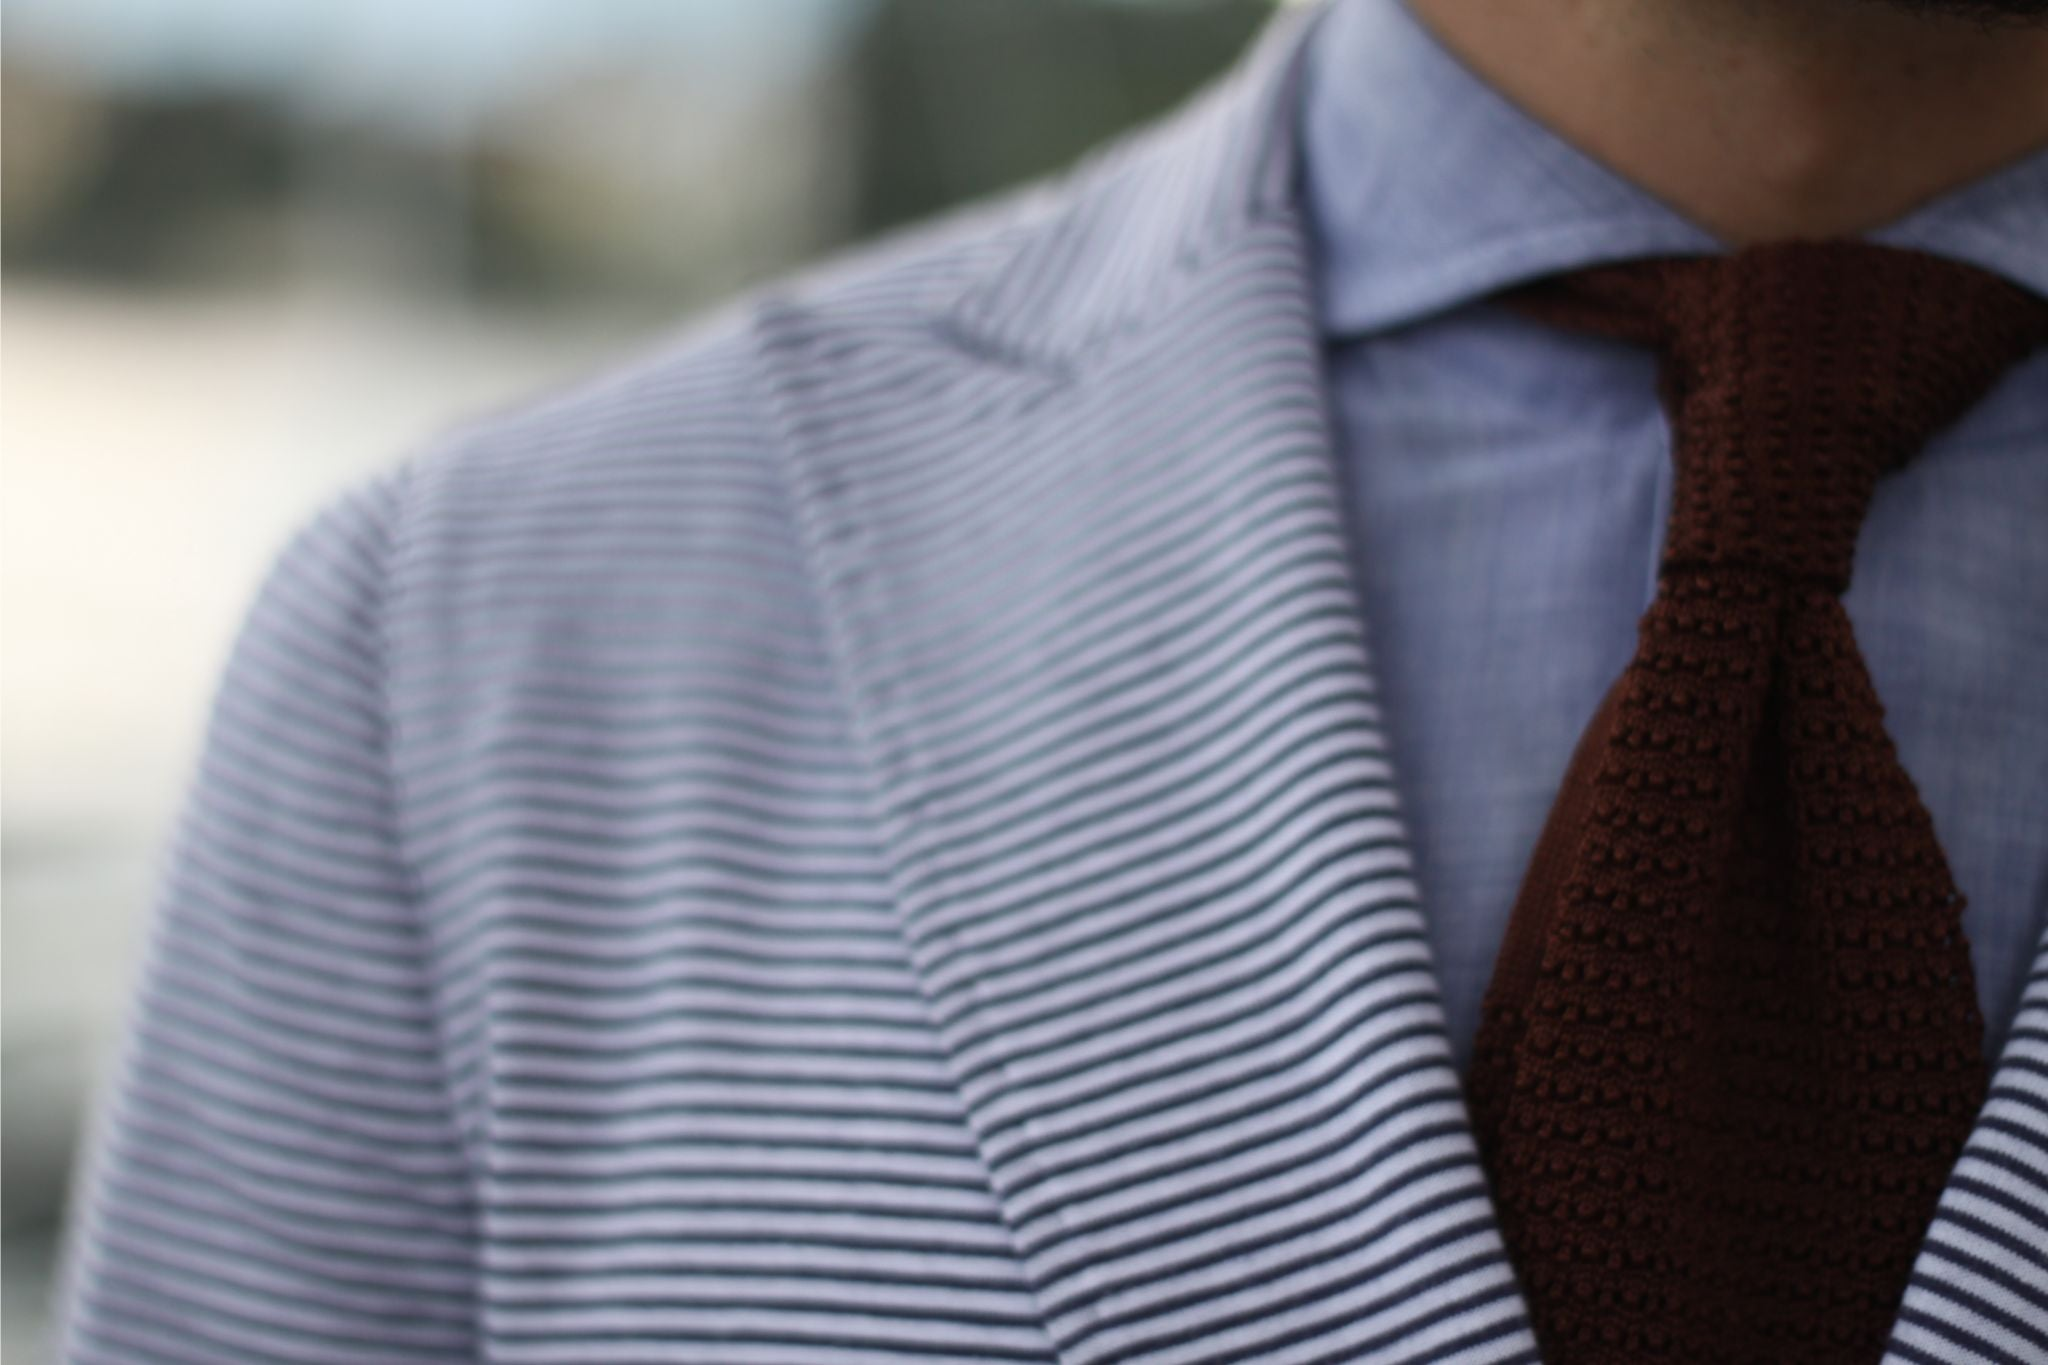 wearing brown knitted tie